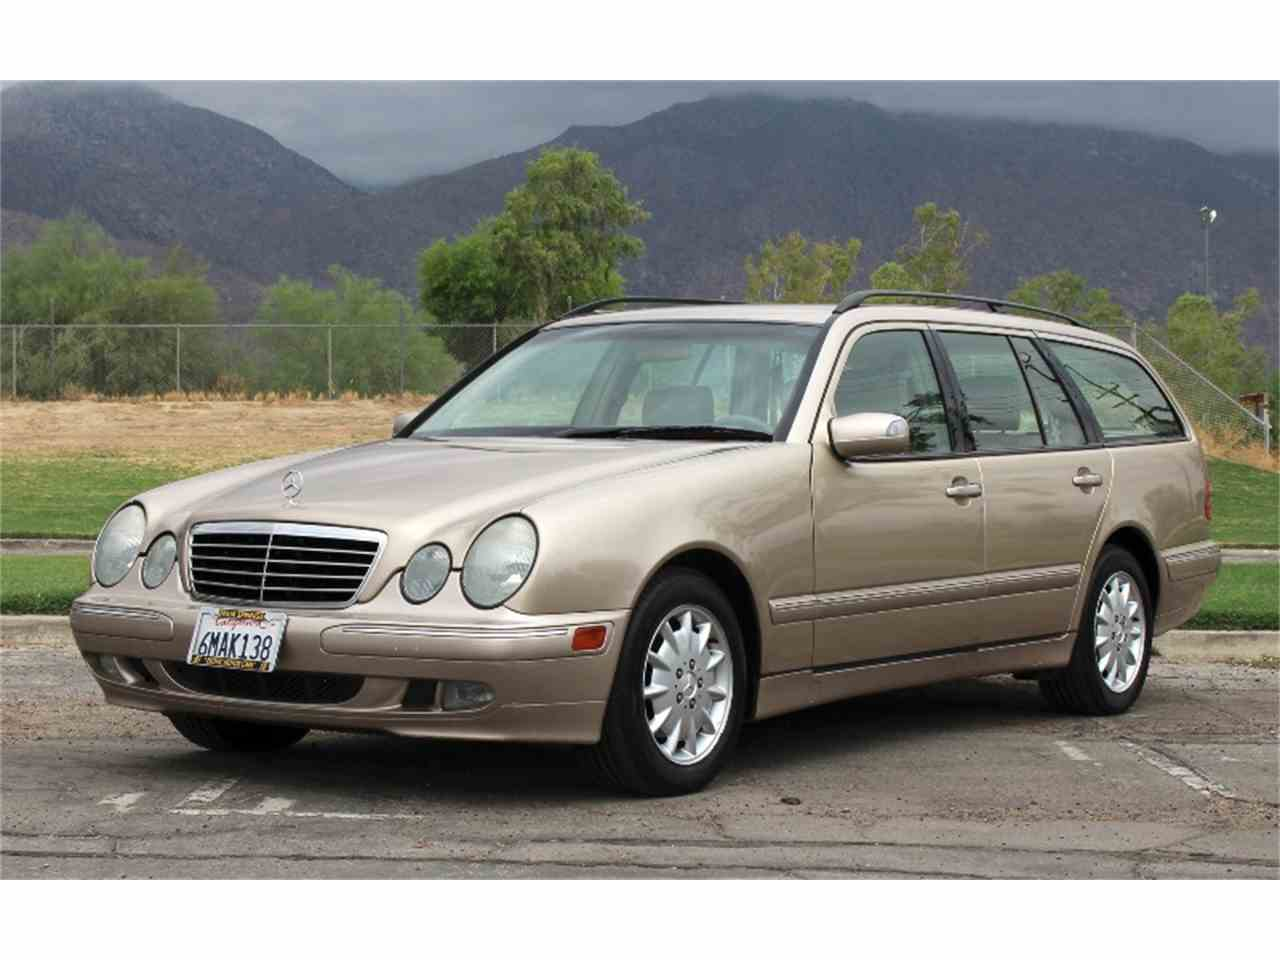 2000 mercedes benz e320 wagon for sale cc 1033134. Black Bedroom Furniture Sets. Home Design Ideas